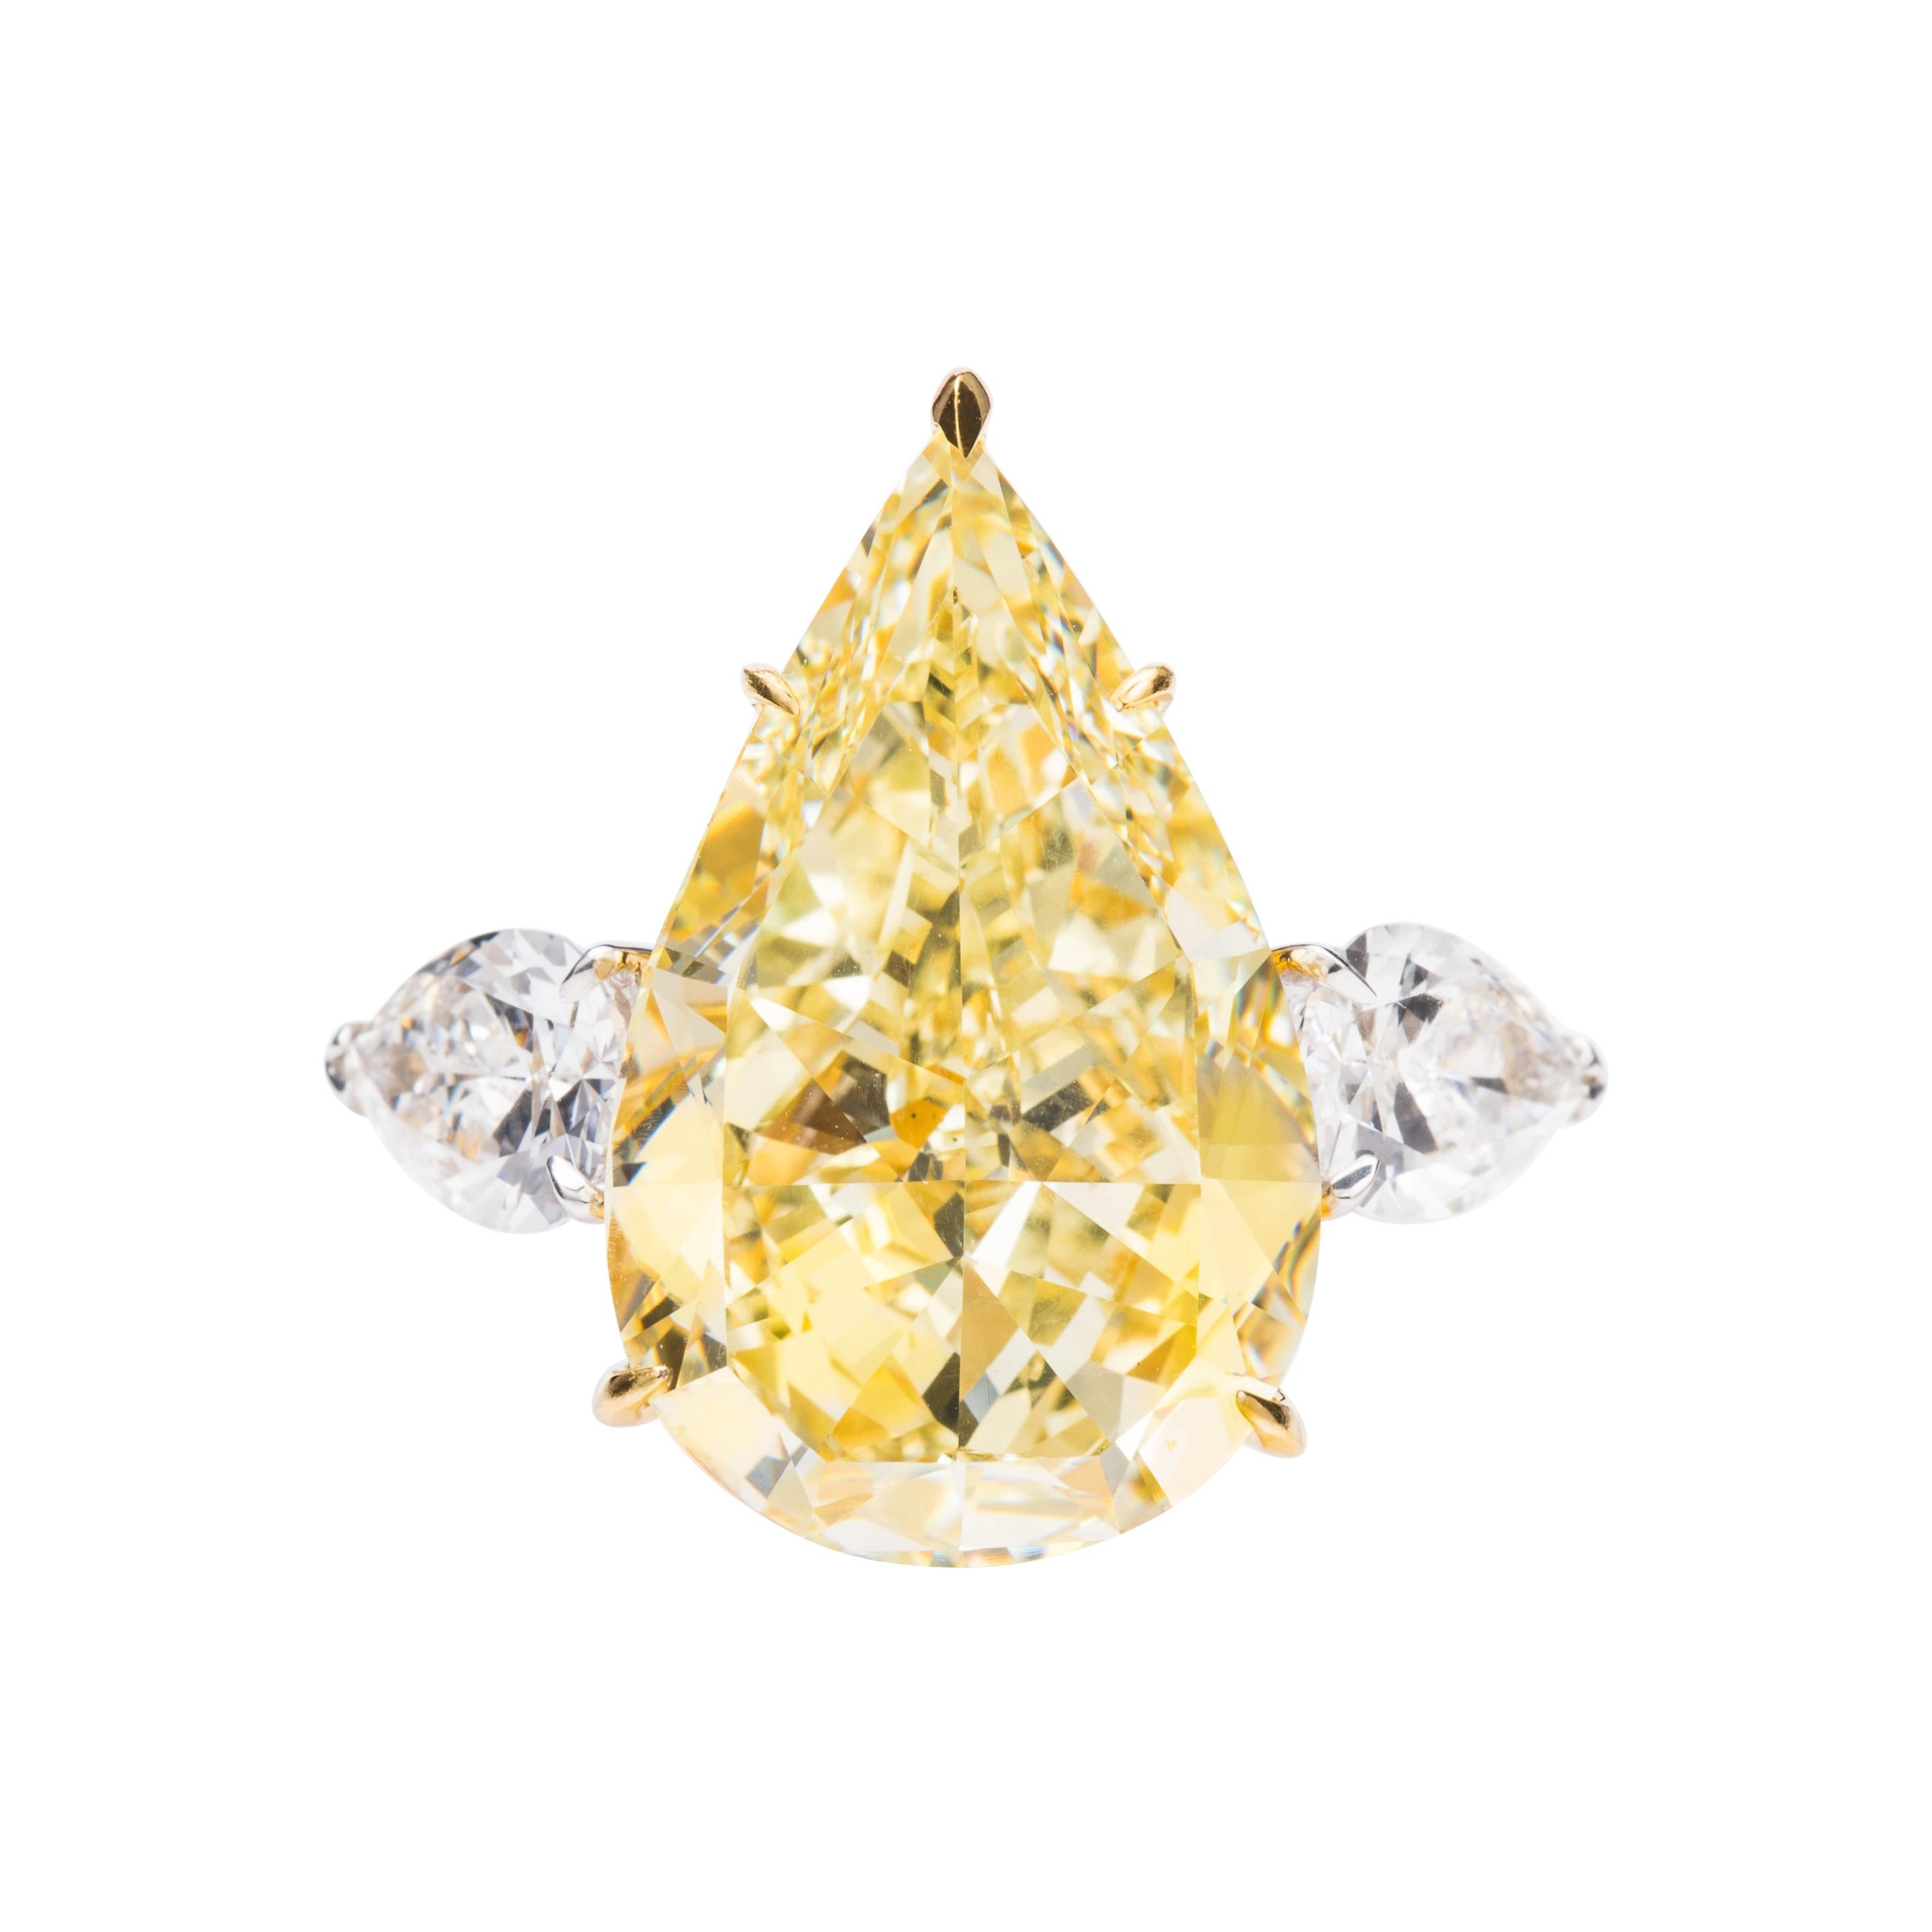 GIA Certified 15.1 Carat Yellow and White Pear Shape Diamond Ring in 18k Gold